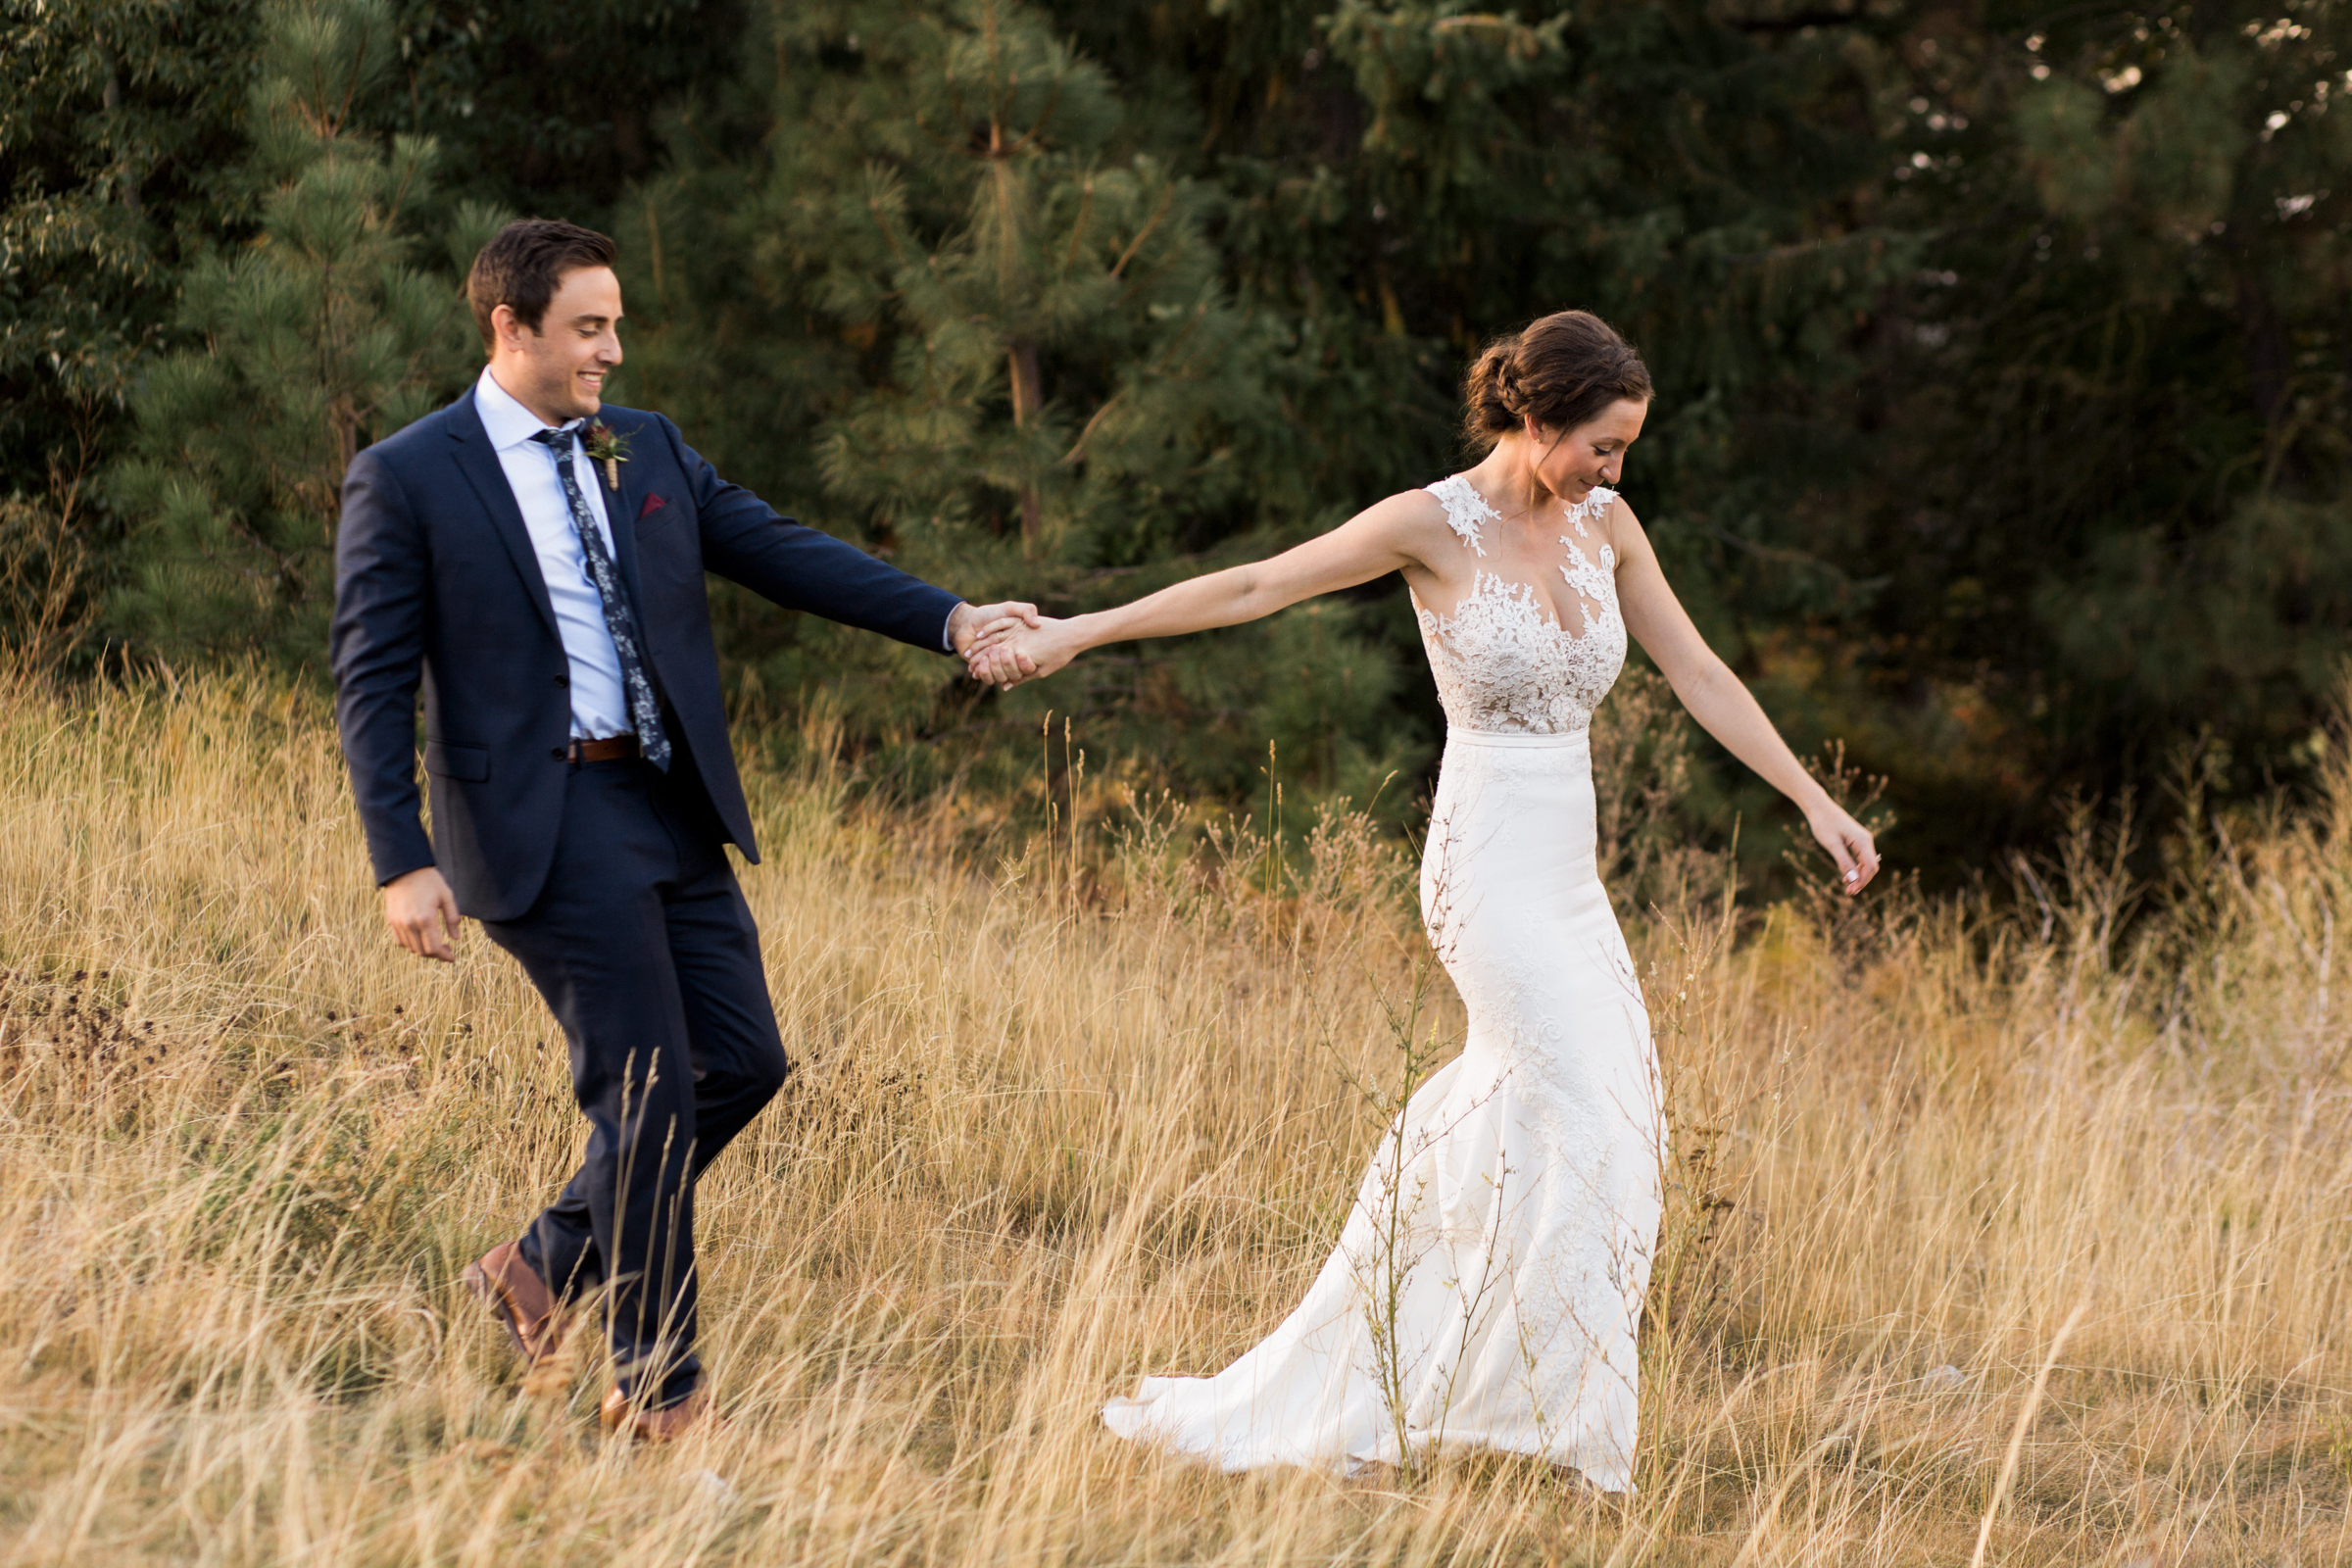 bride in applique lace dress with bustle pulls groom dow the hill - photo by Stephanie Cristalli Photography